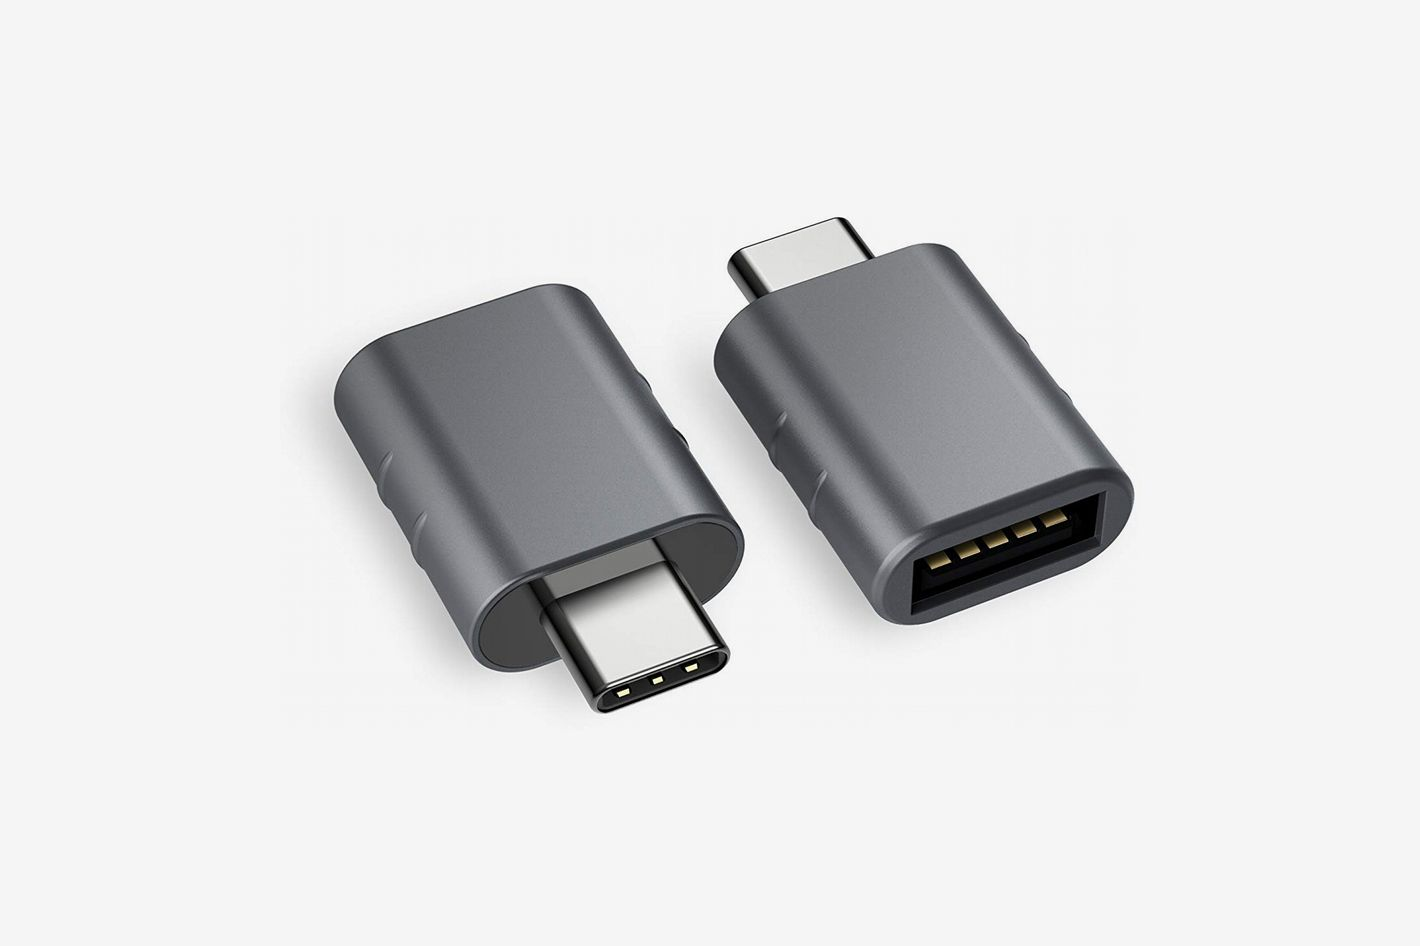 Syntech USB-C to USB Adapter - 2 Pack